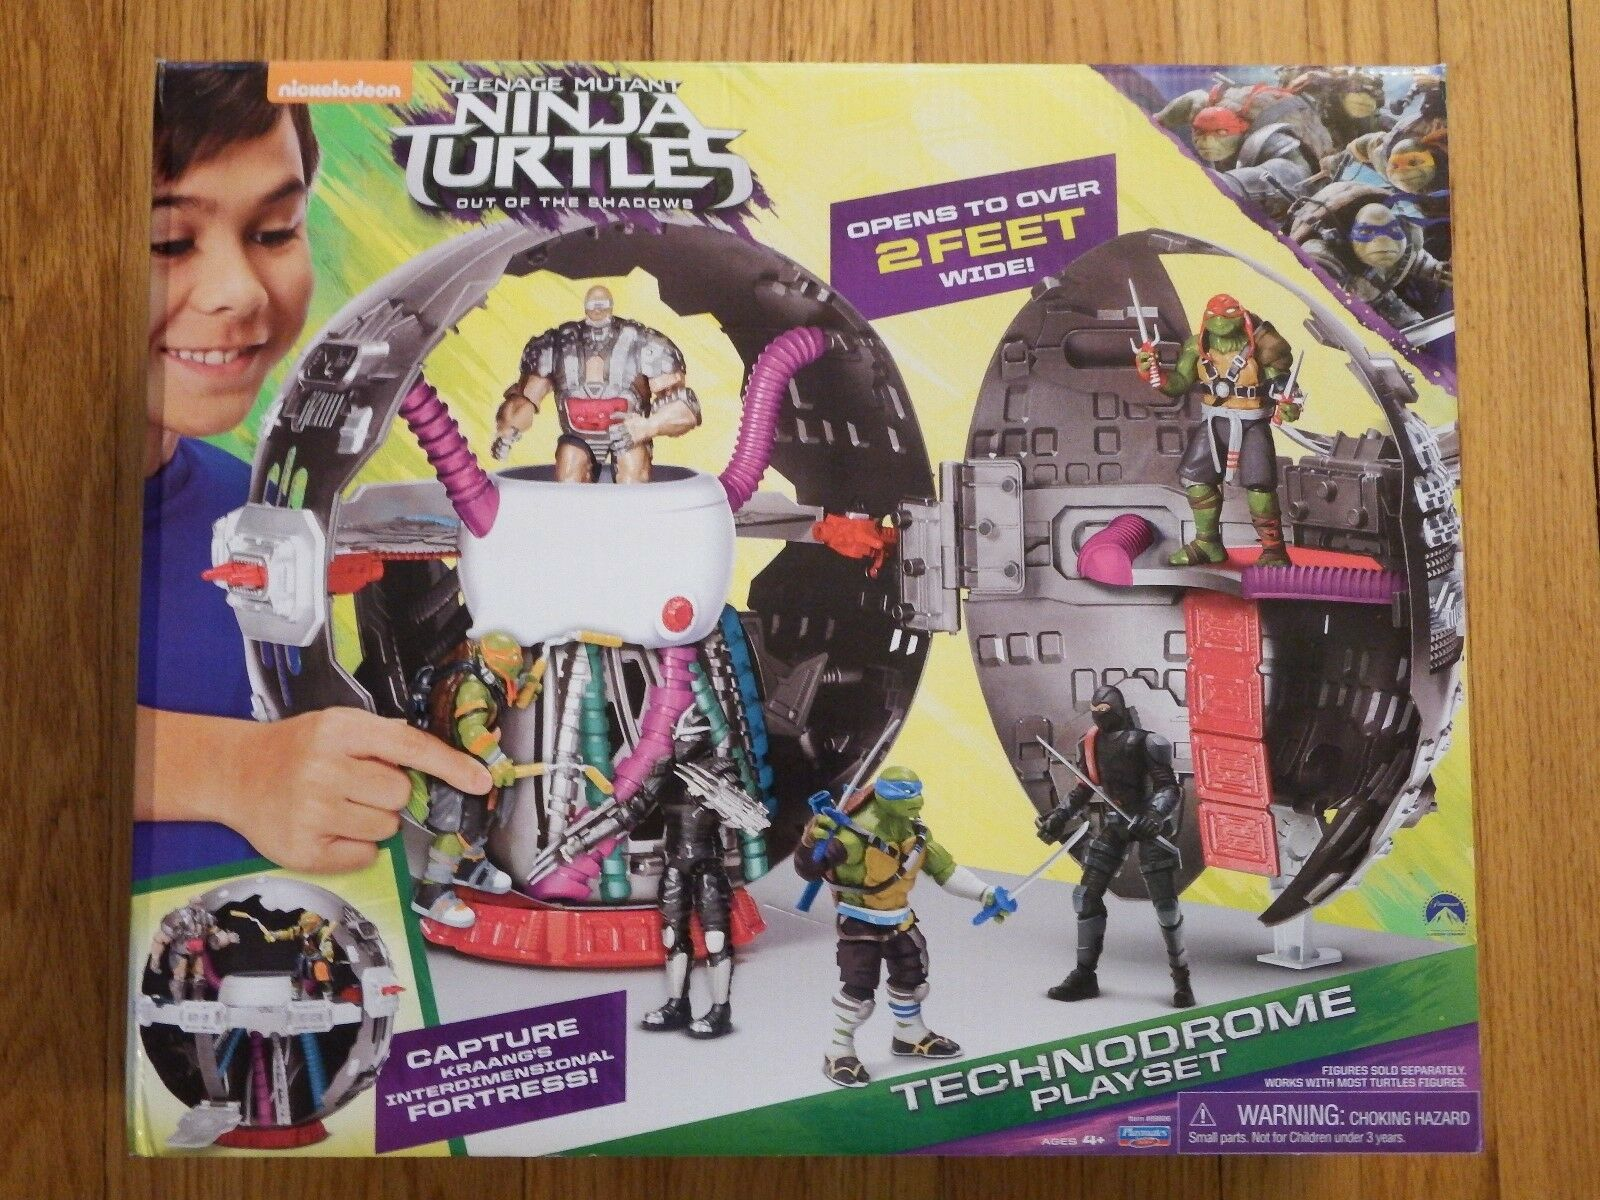 Teenage Mutant Ninja Turtles TECHNODROME PLAYSET - Ages 4 & up